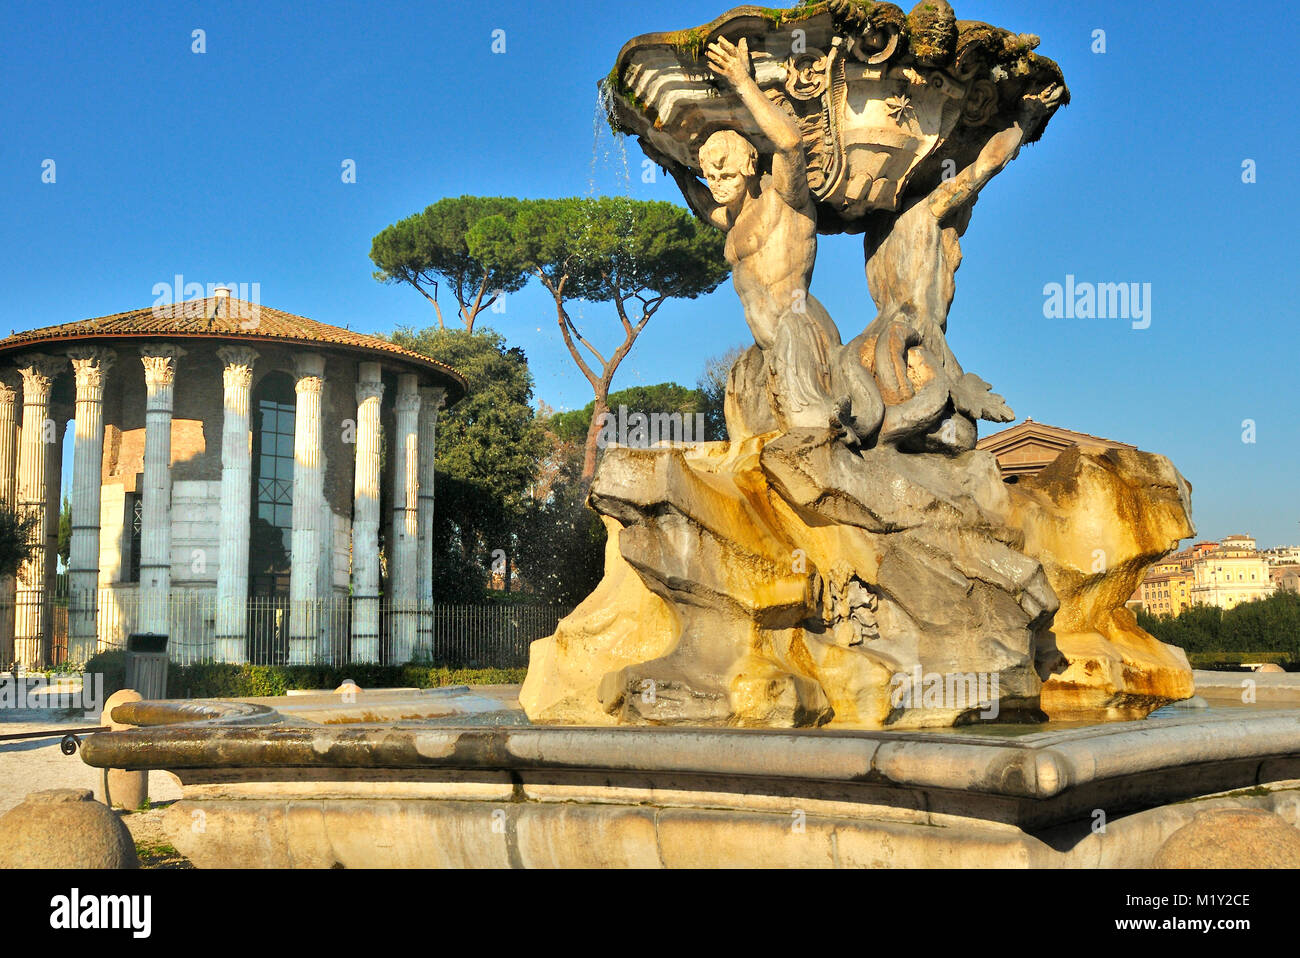 The Temple of Hercules Victor, with the Triton fountain, Rome - Stock Image